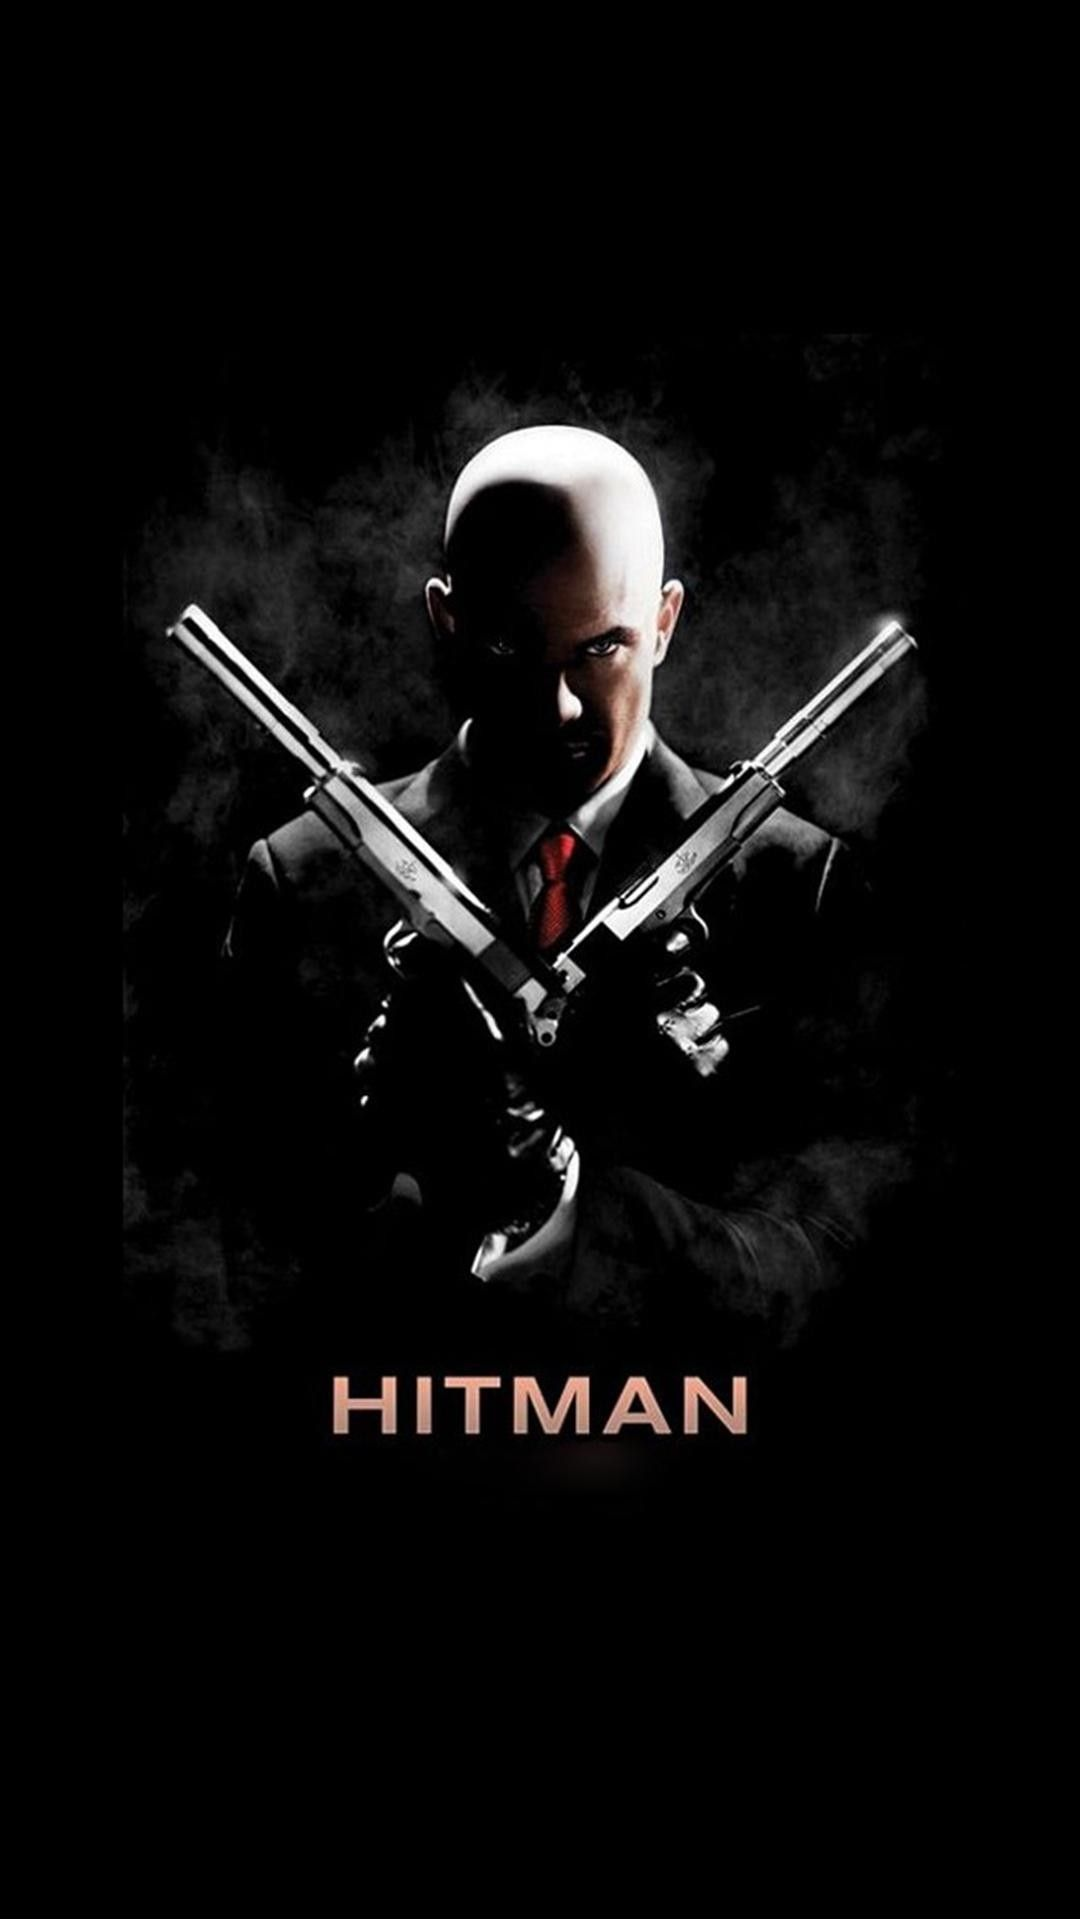 60 Marvelous Game Iphone Wallpapers For Gamers In 2020 Hitman Movie Hitman Hitman Agent 47